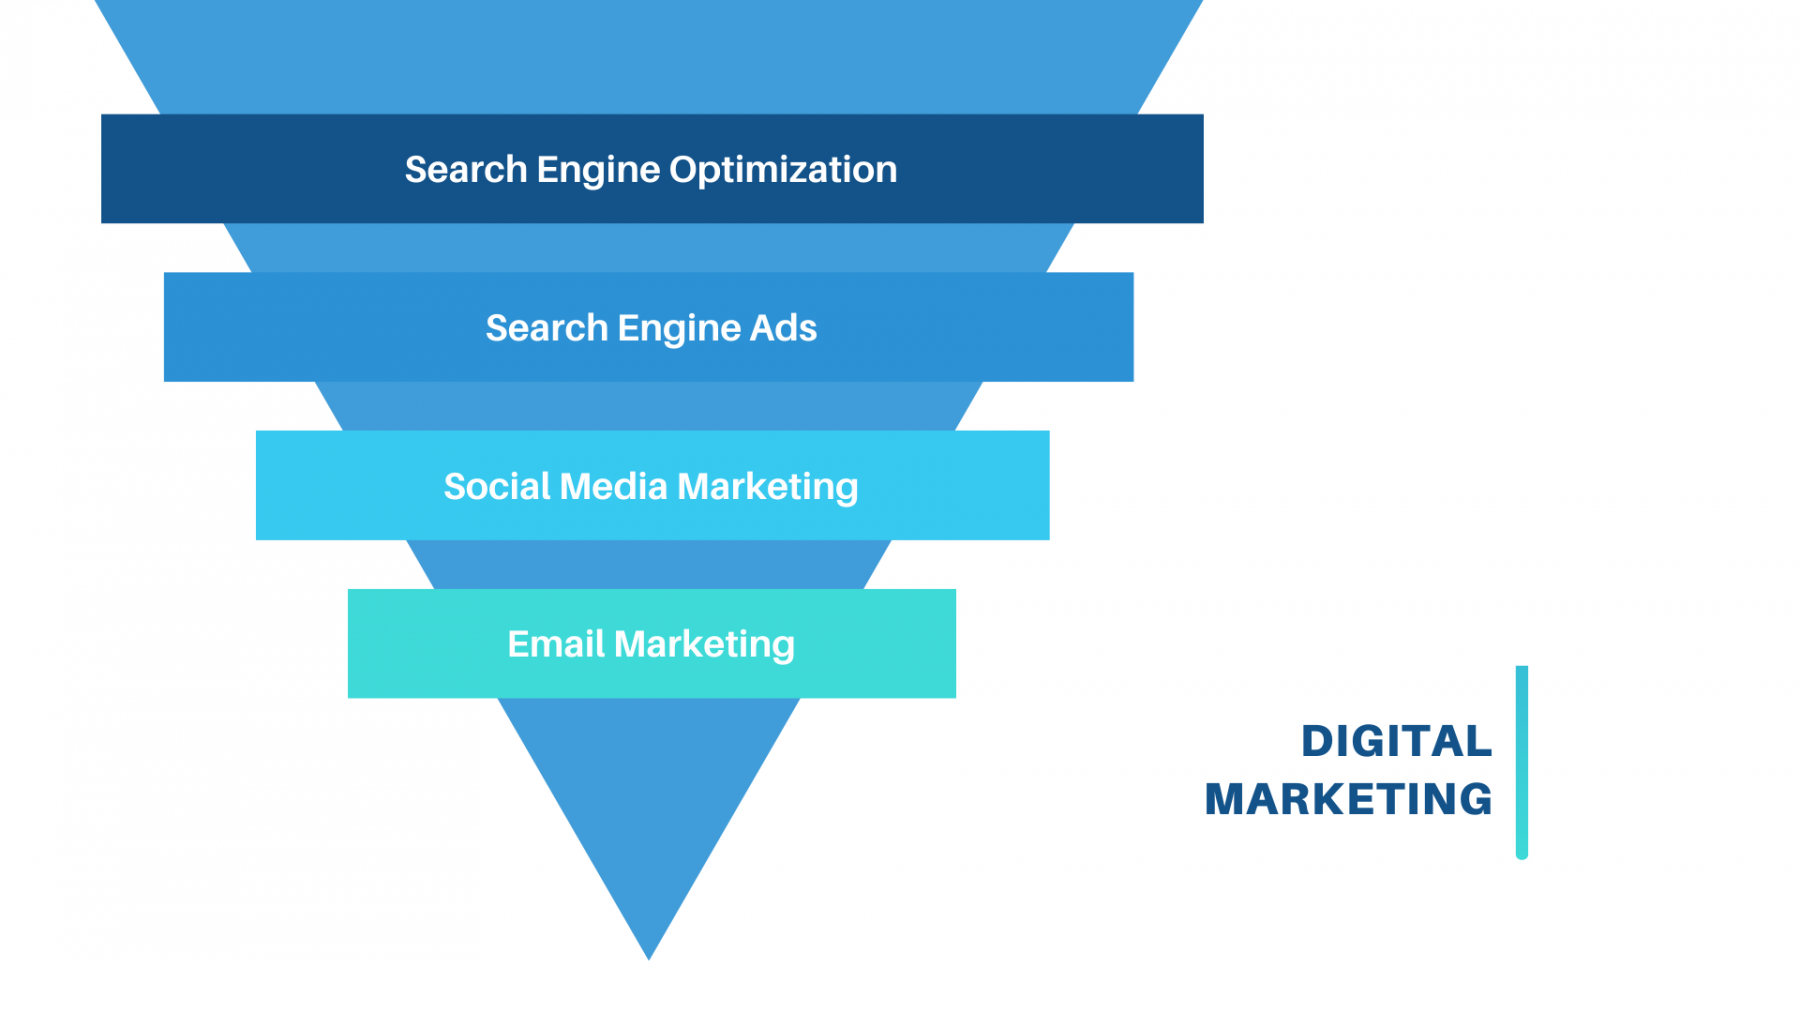 Digital Marketing Solutions funnel